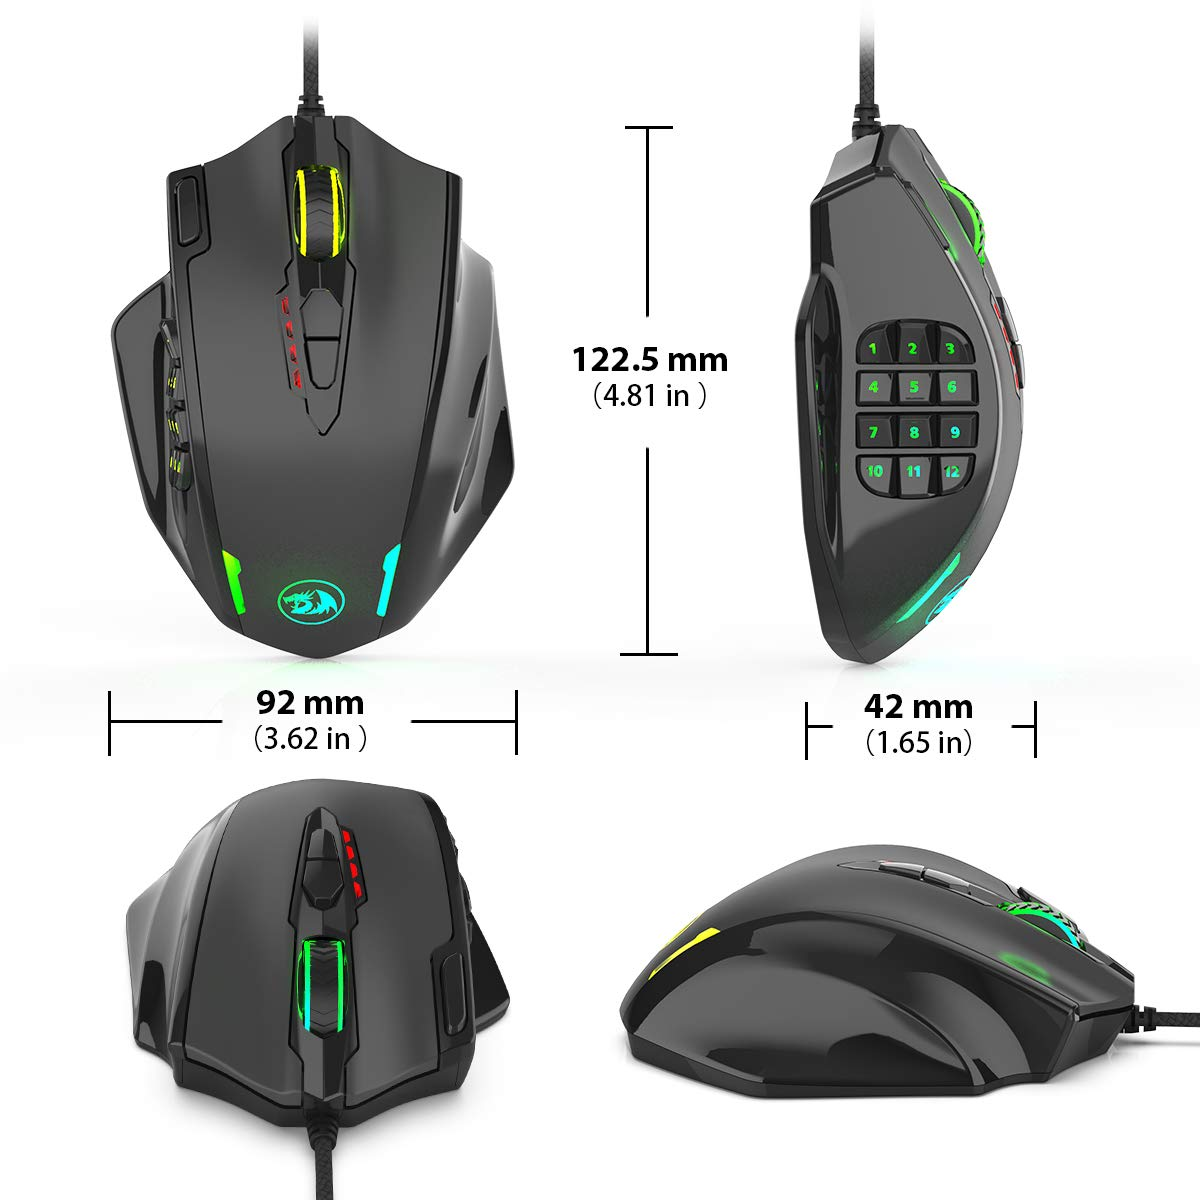 Redragon Impact RGB LED MMO Mouse with Side Buttons Laser Wired Gaming Mouse with 12,400DPI, High Precision, 19 Programmable Mouse Buttons by Redragon (Image #2)